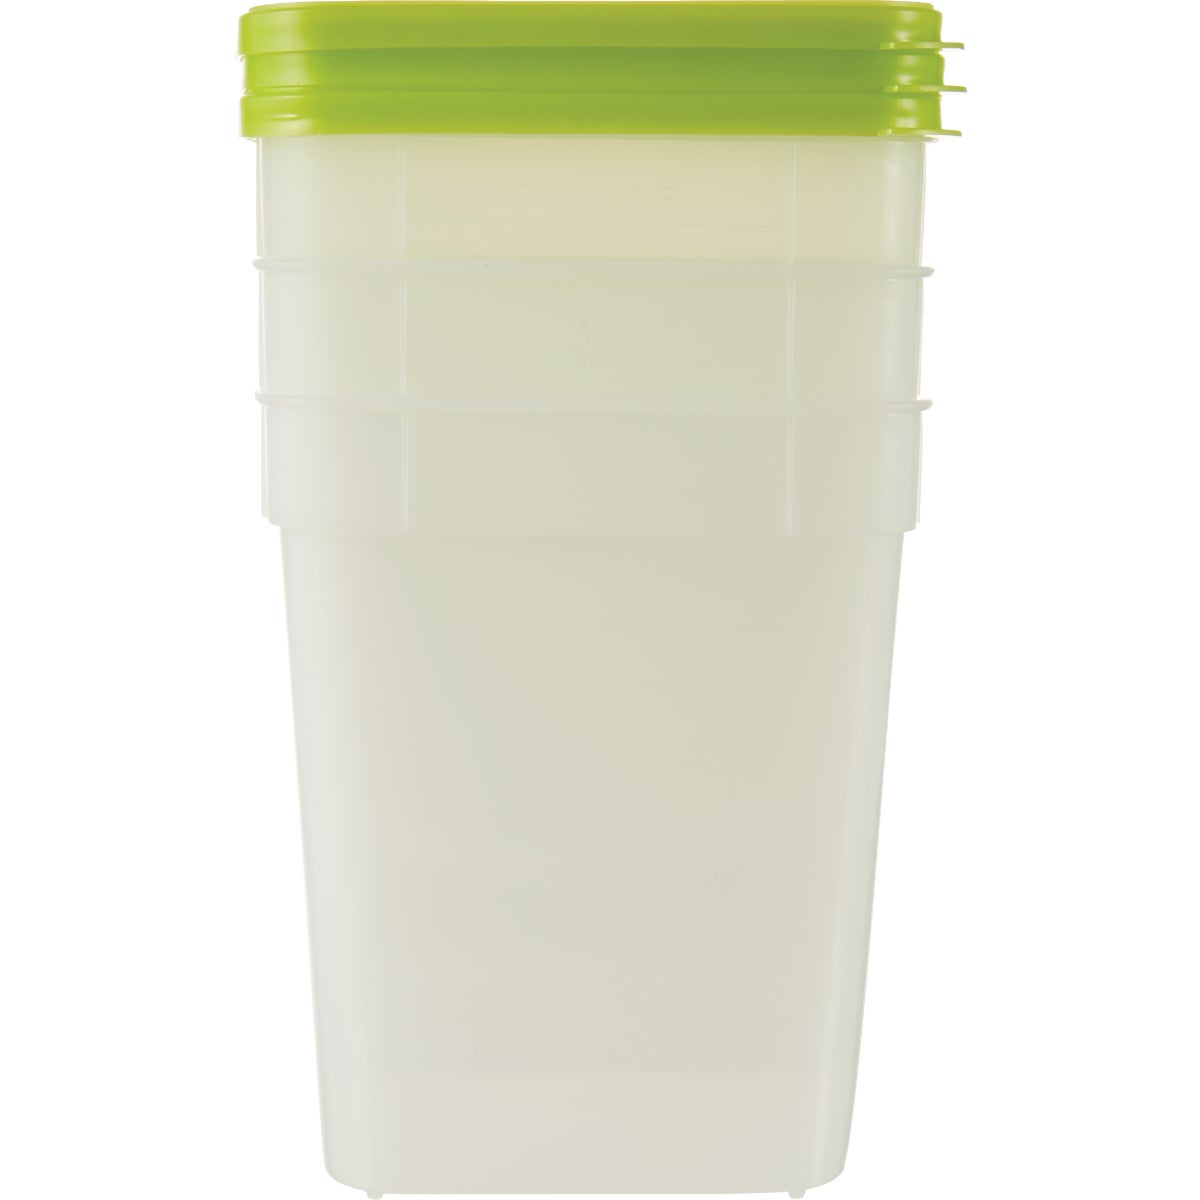 QUART STORAGE CONTAINER - 00044 by Arrow Plastic Mfg Co